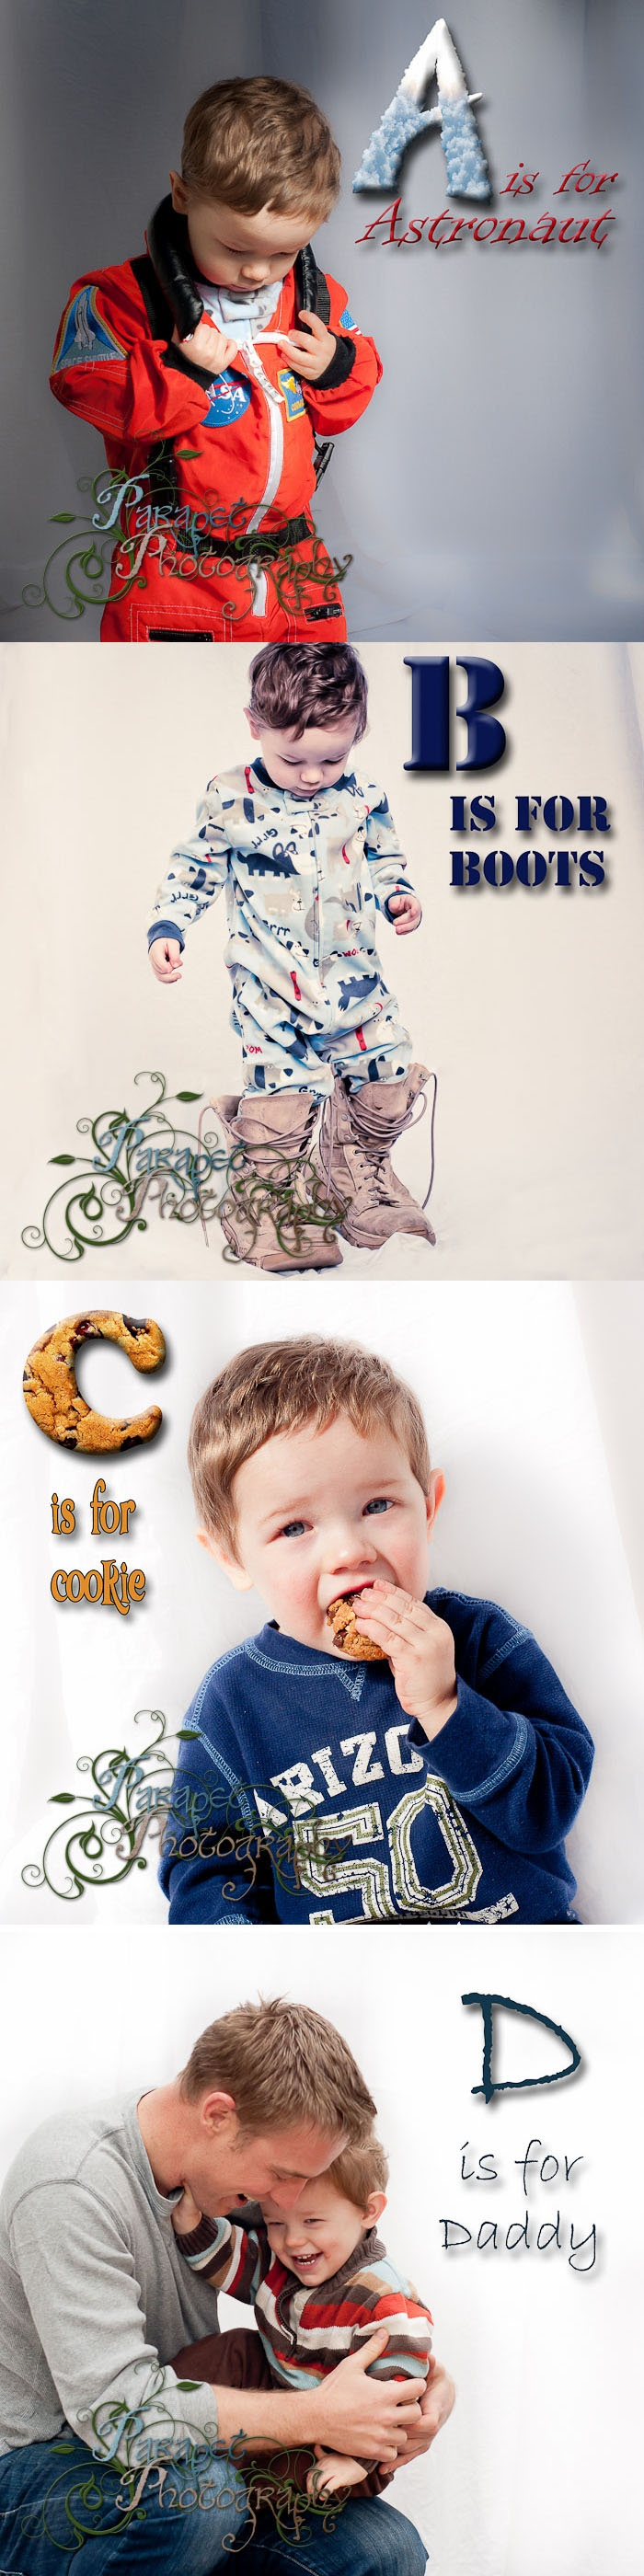 A basic guide on how to do a children's alphabet book themed photoshoot.